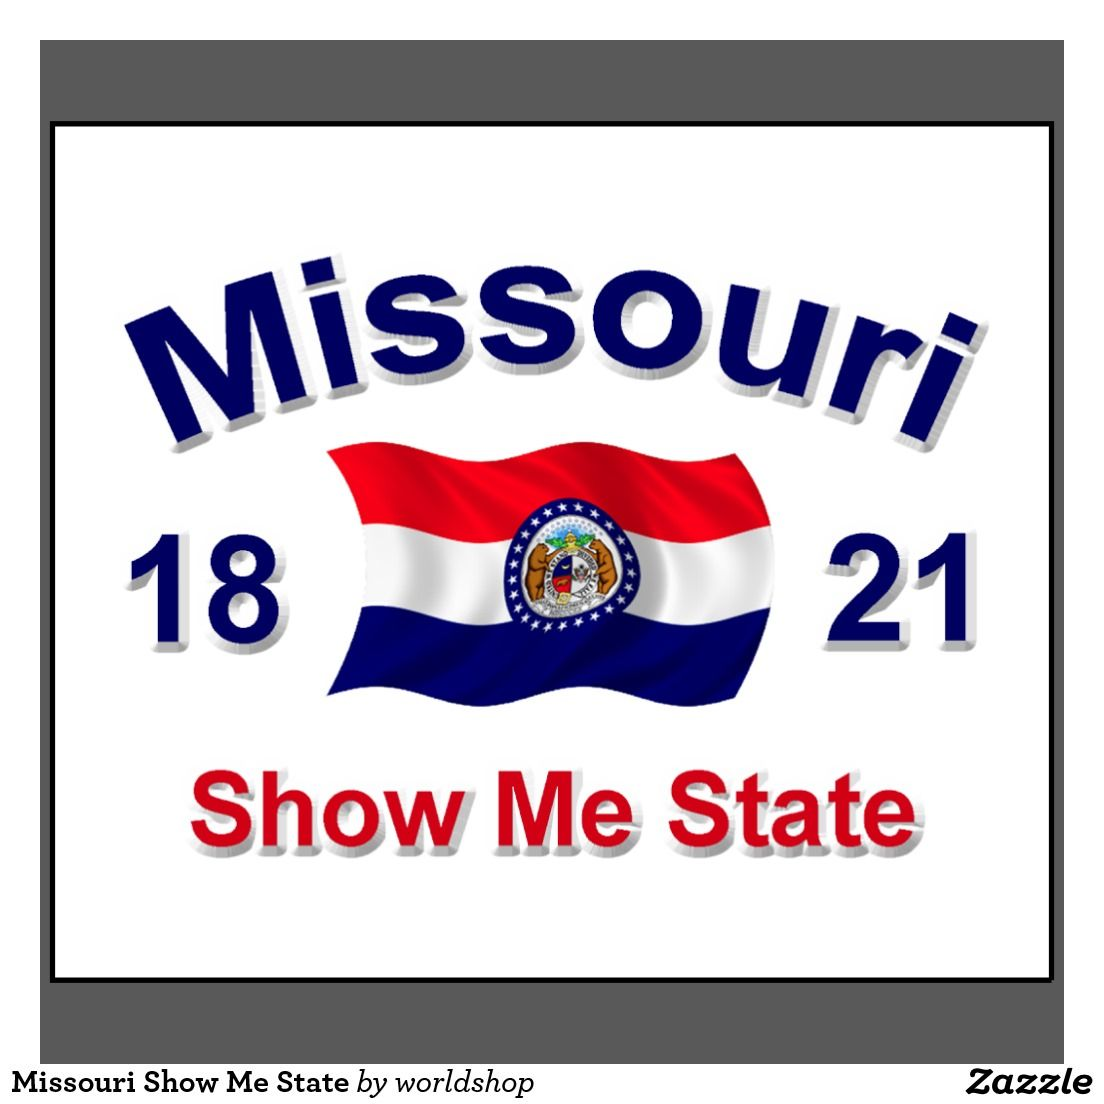 Have You Ever Seen A Car Pass With A Missouri License